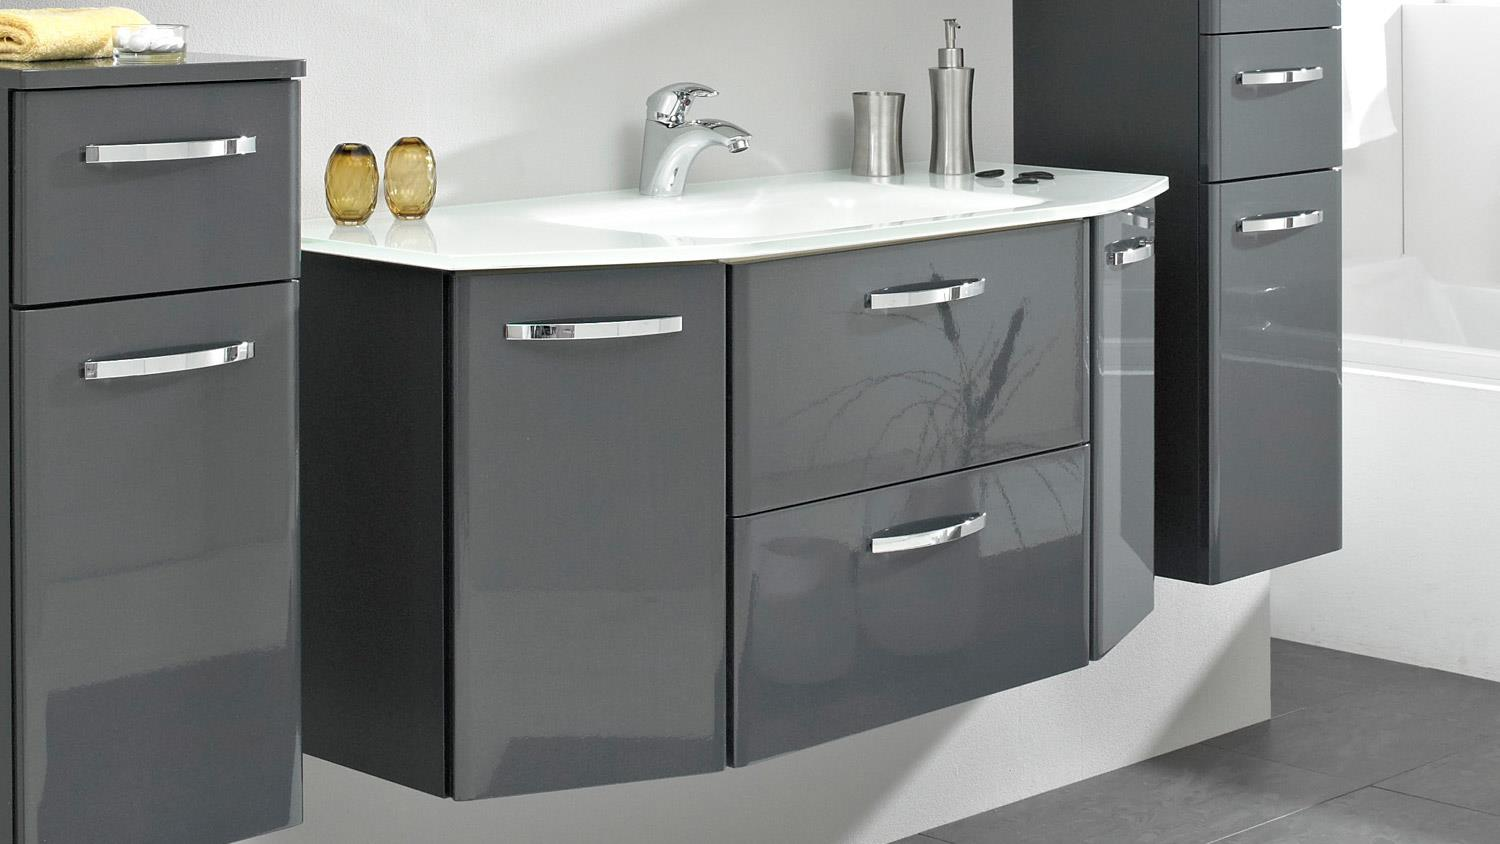 pelipal waschbeckenunterschrank velo in anthrazit hochglanz t rd mpfer. Black Bedroom Furniture Sets. Home Design Ideas